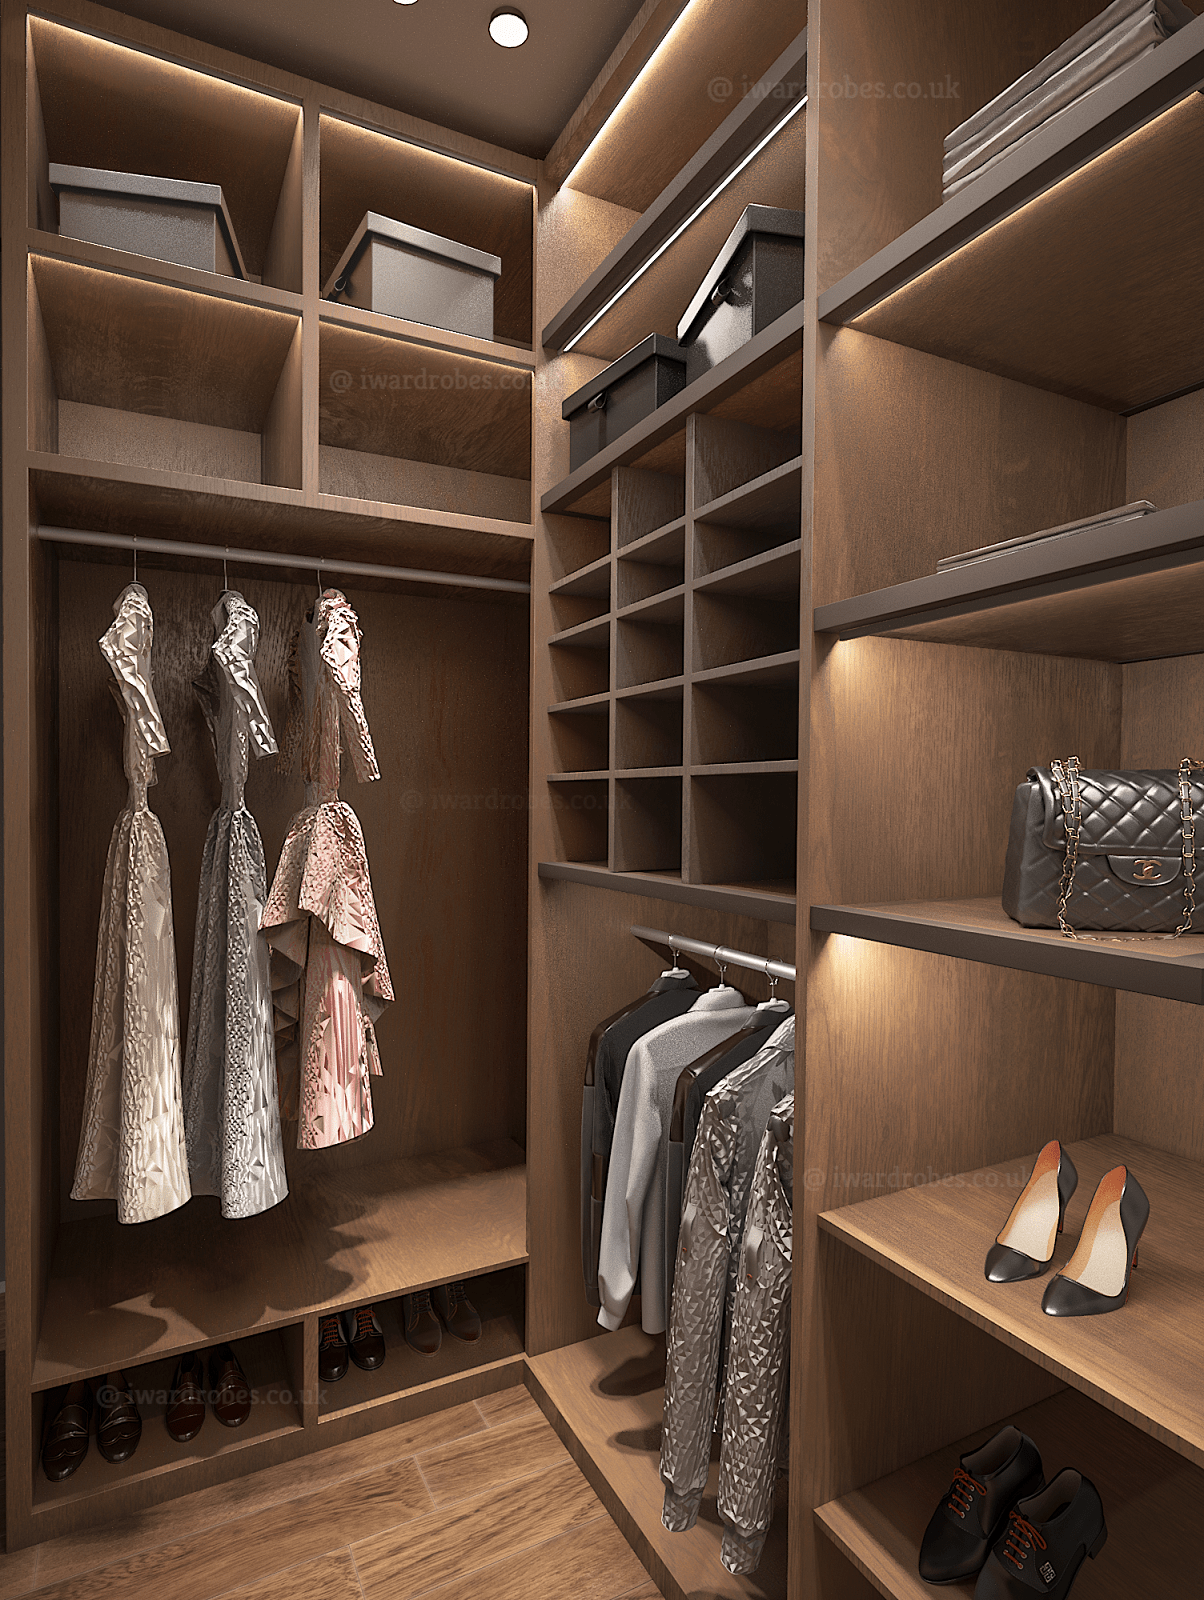 Bespoke Walk In Closets And Fitted Wardrobes I Wardrobes